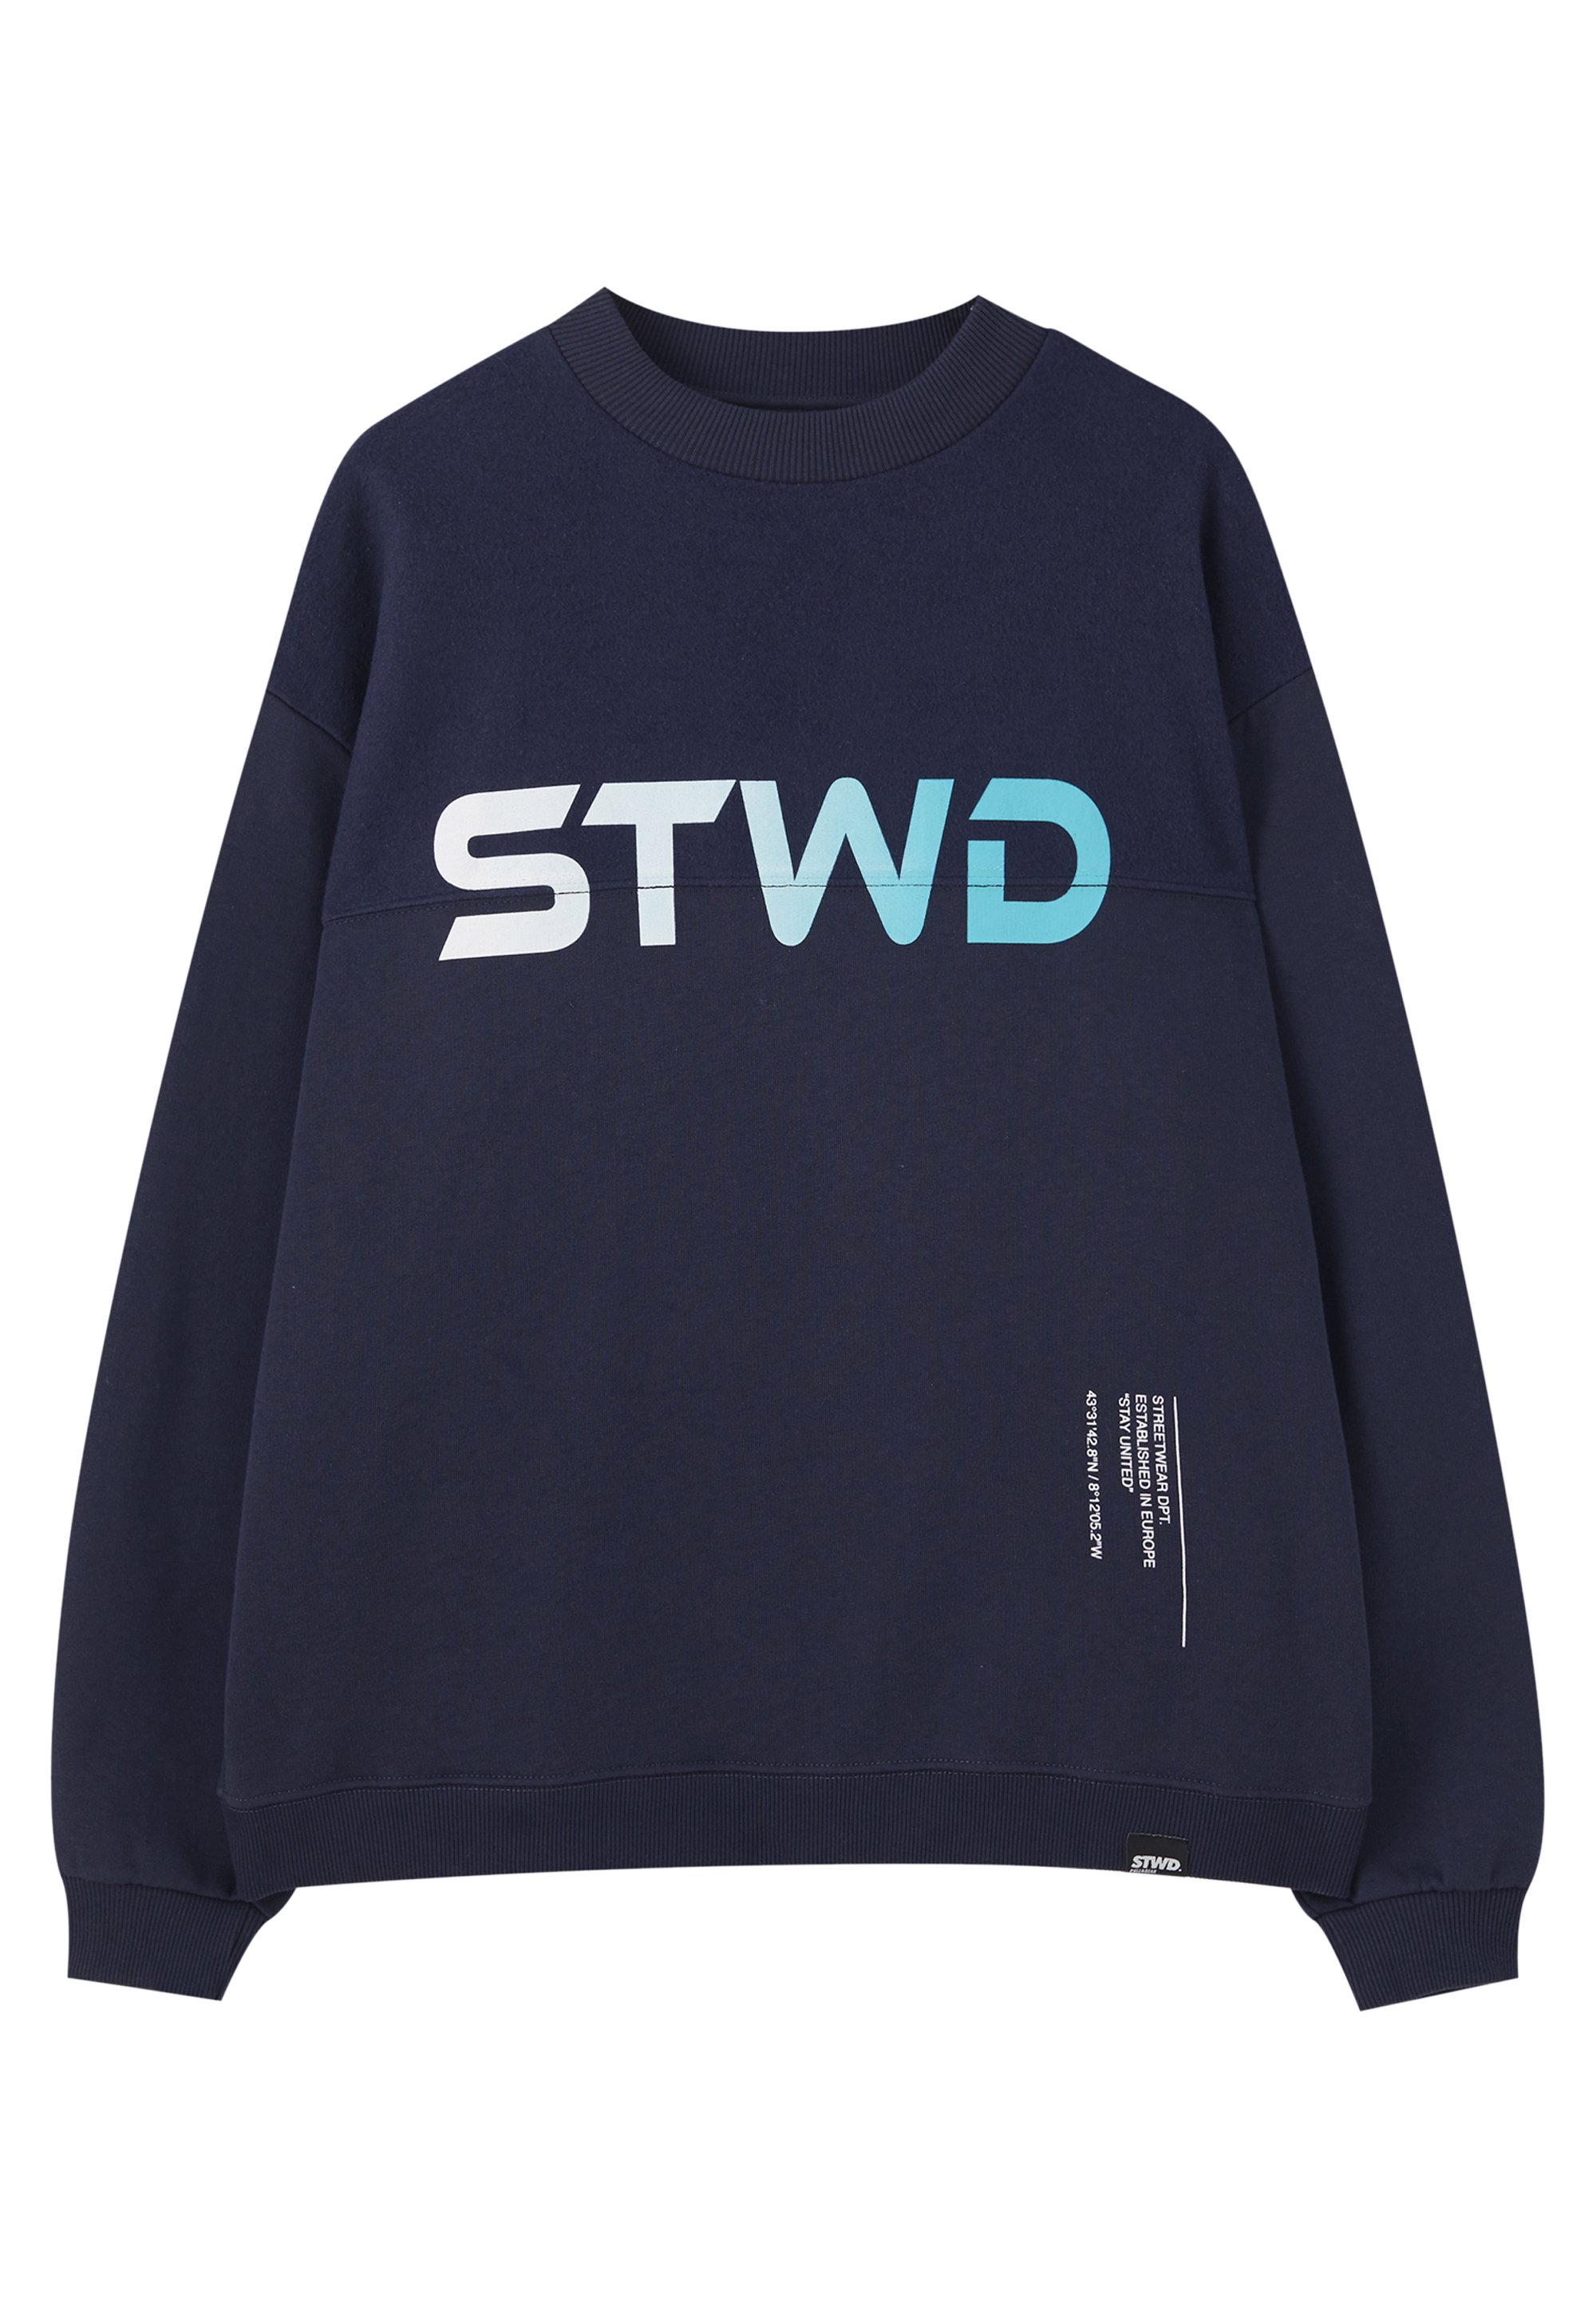 PULL&BEAR MIT WOLFSMOTIV Sweatshirt dark blue Zalando.at